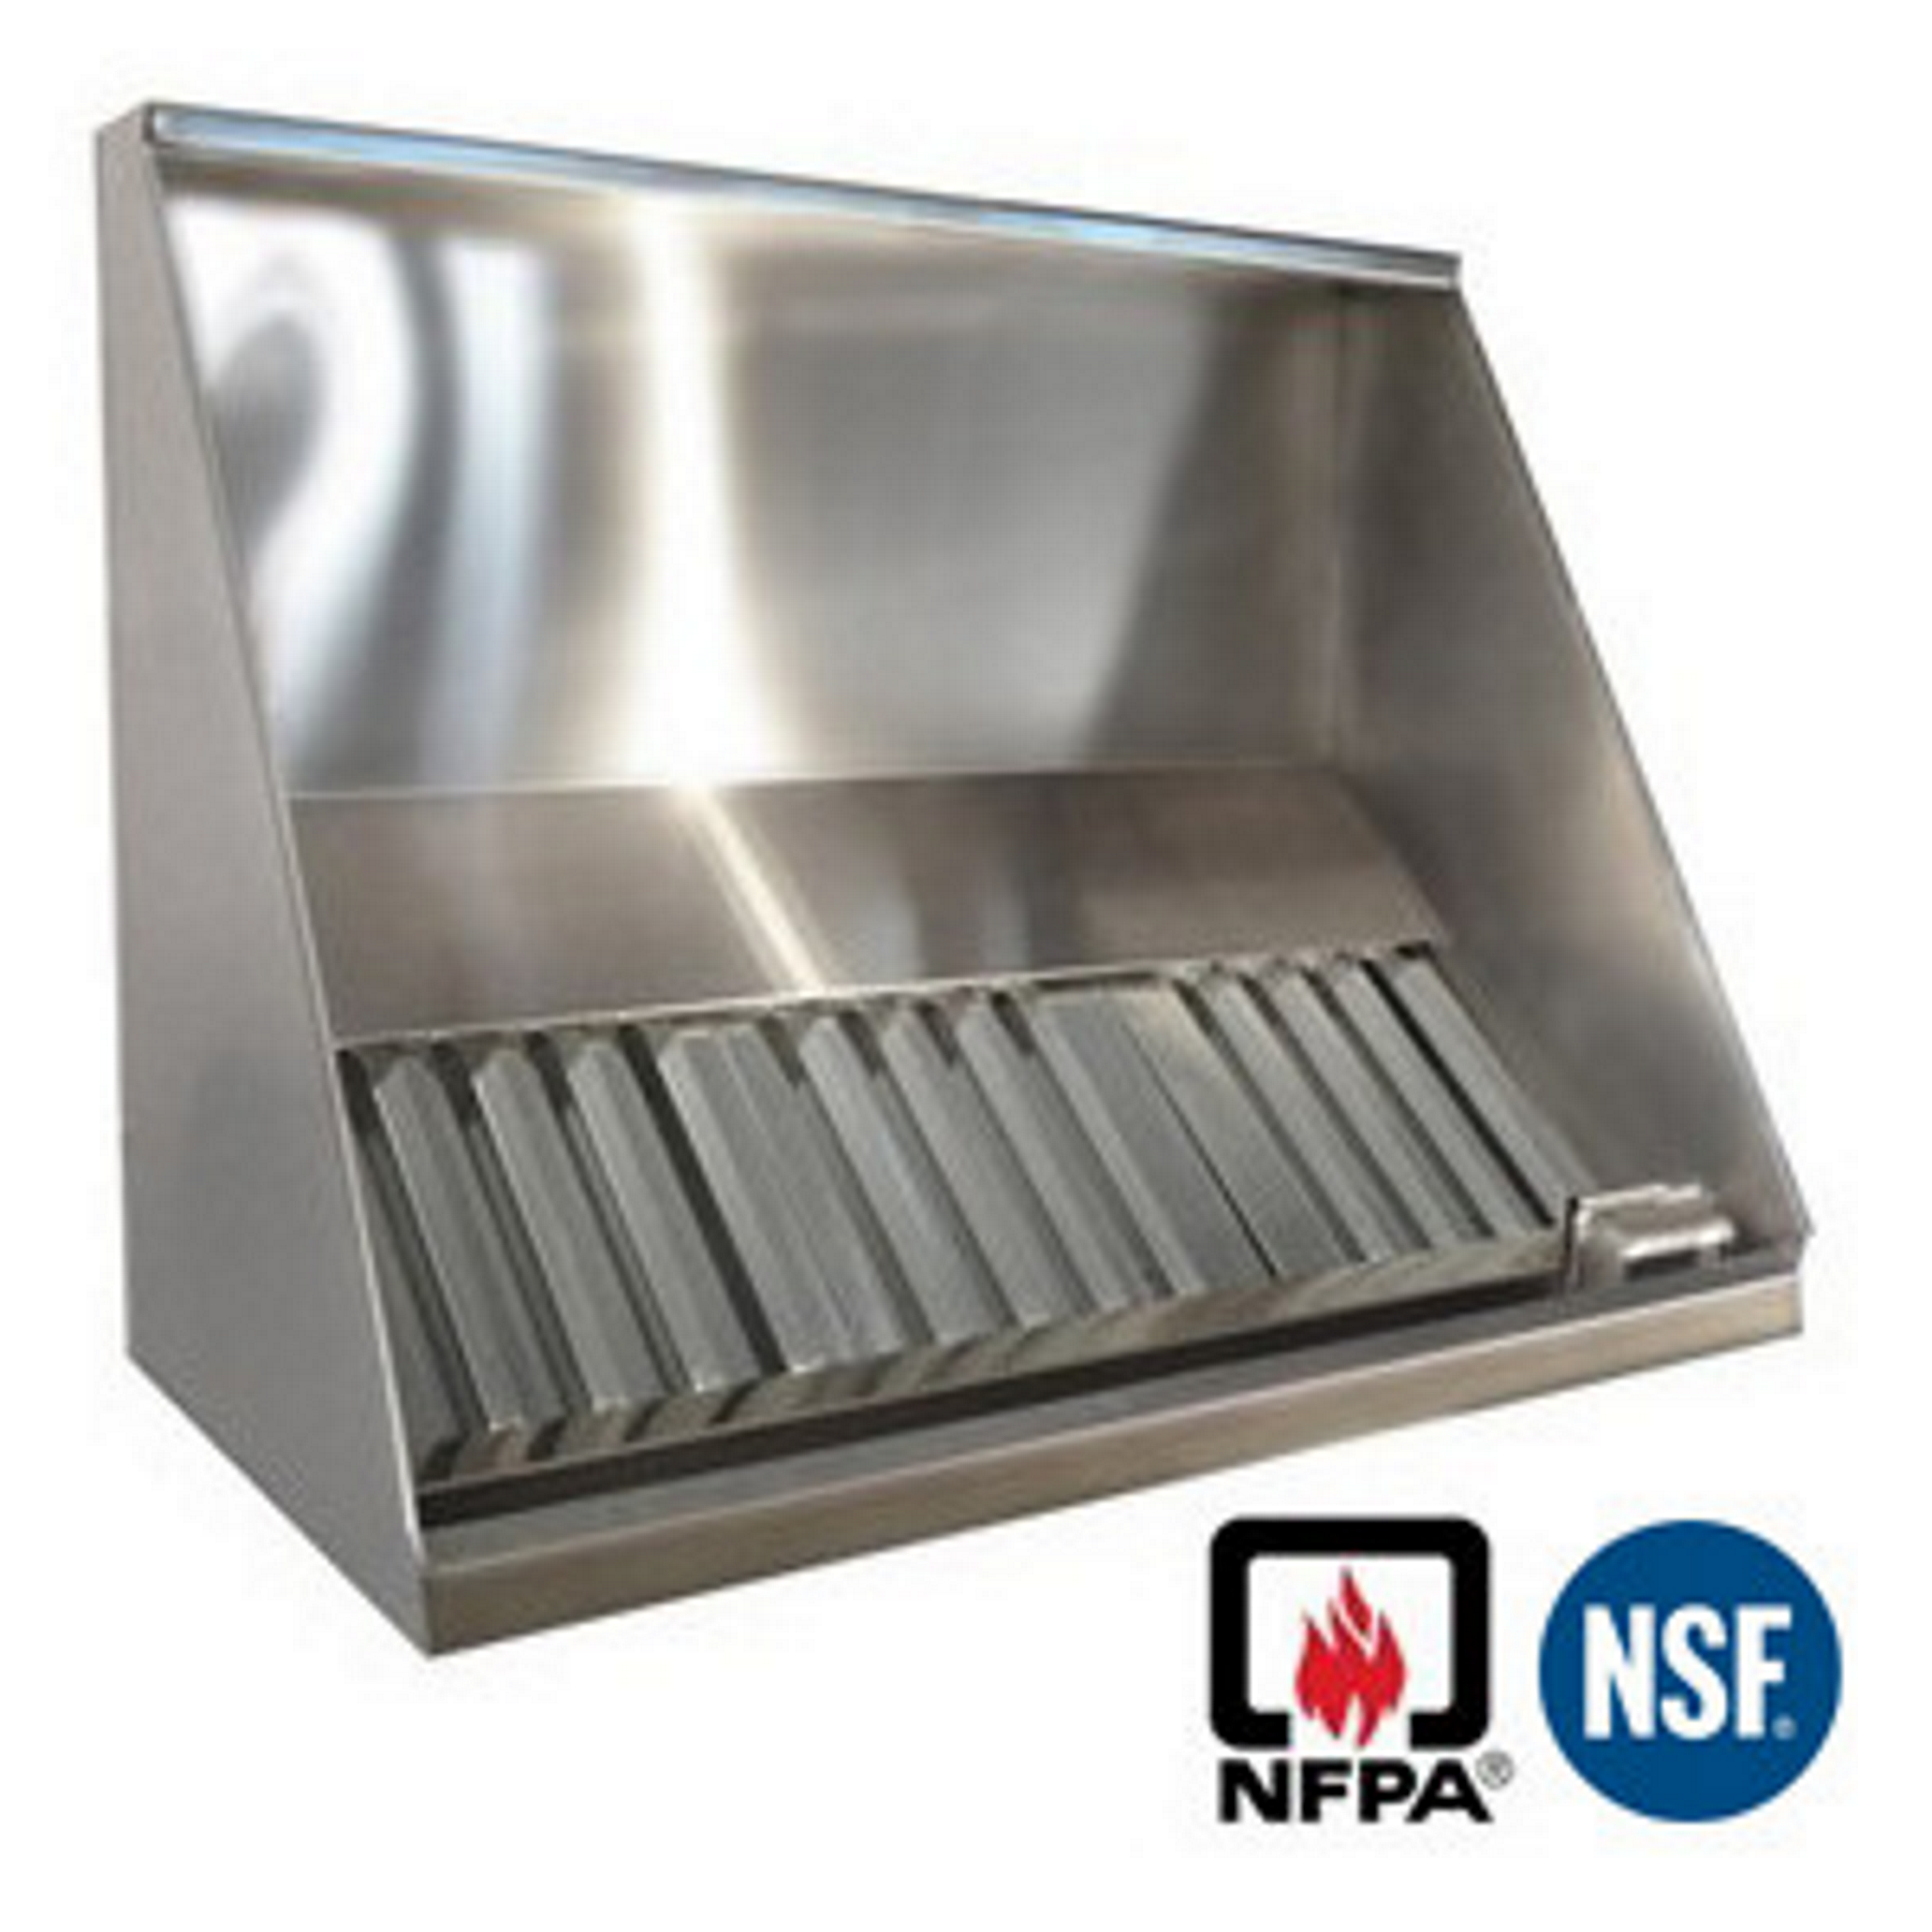 Exhaust Hoods Product ~ Jrsvhc concession exhaust vent hood shallow front